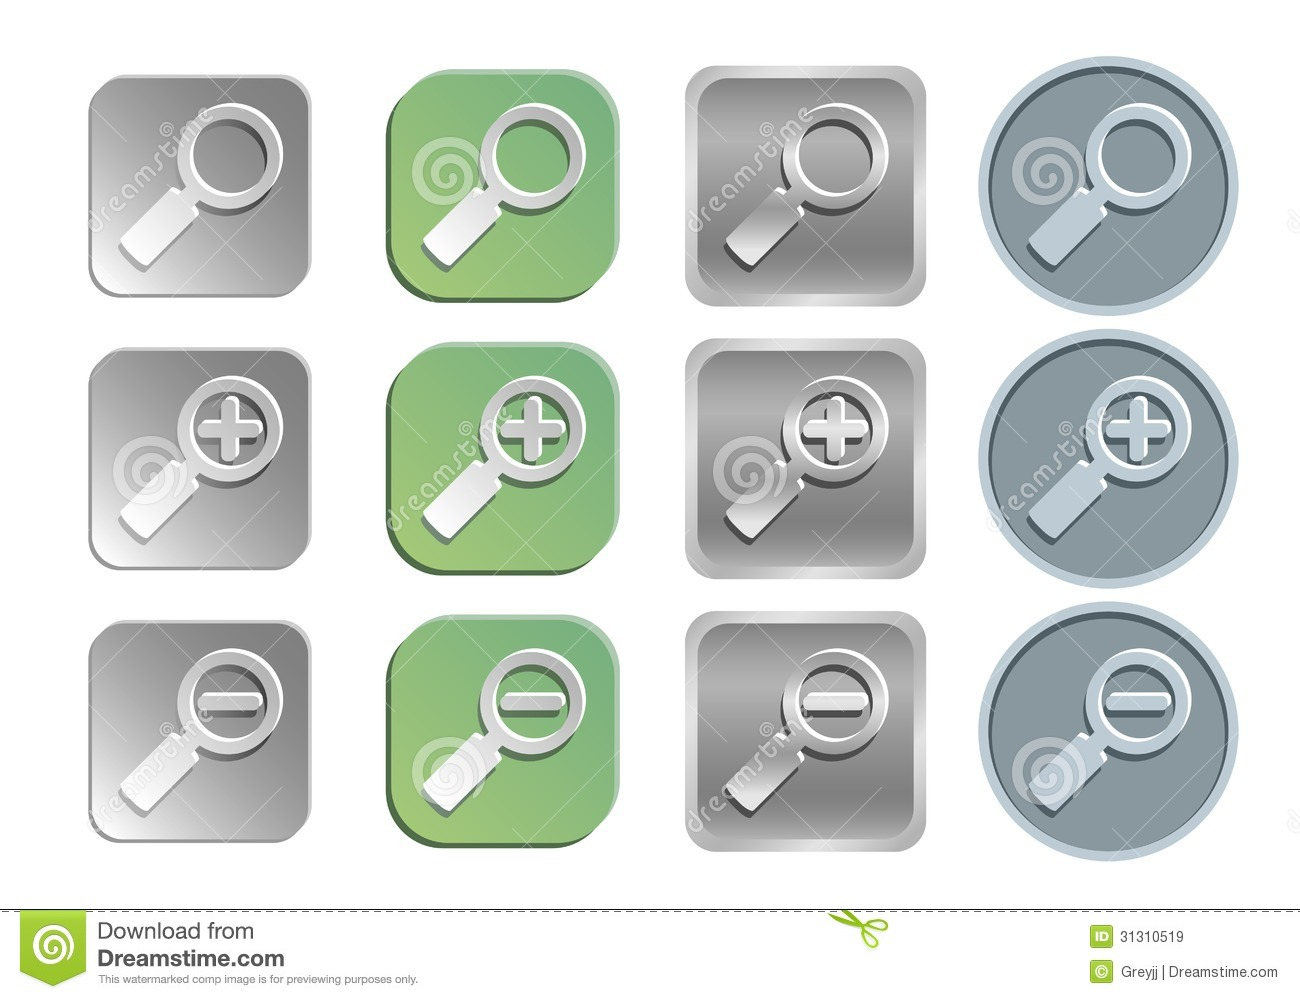 Zoom/search Icons Stock Vector. Illustration Of Design